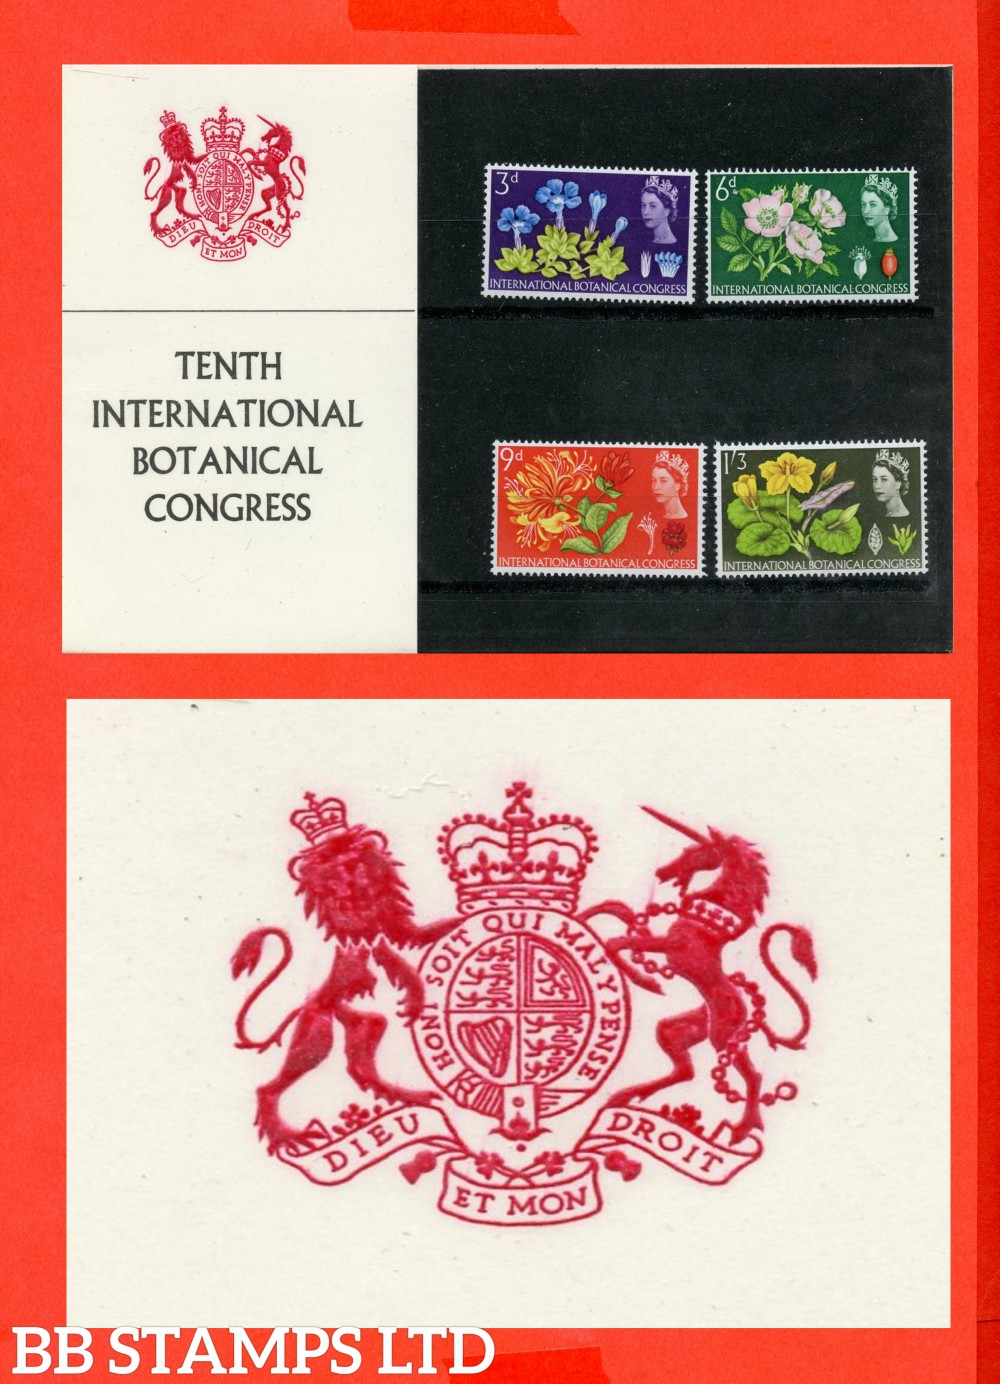 1964 Botanical Congress (Pres Pack is Type A = Unicorns Collar is Decorated With fleur-de-lys)